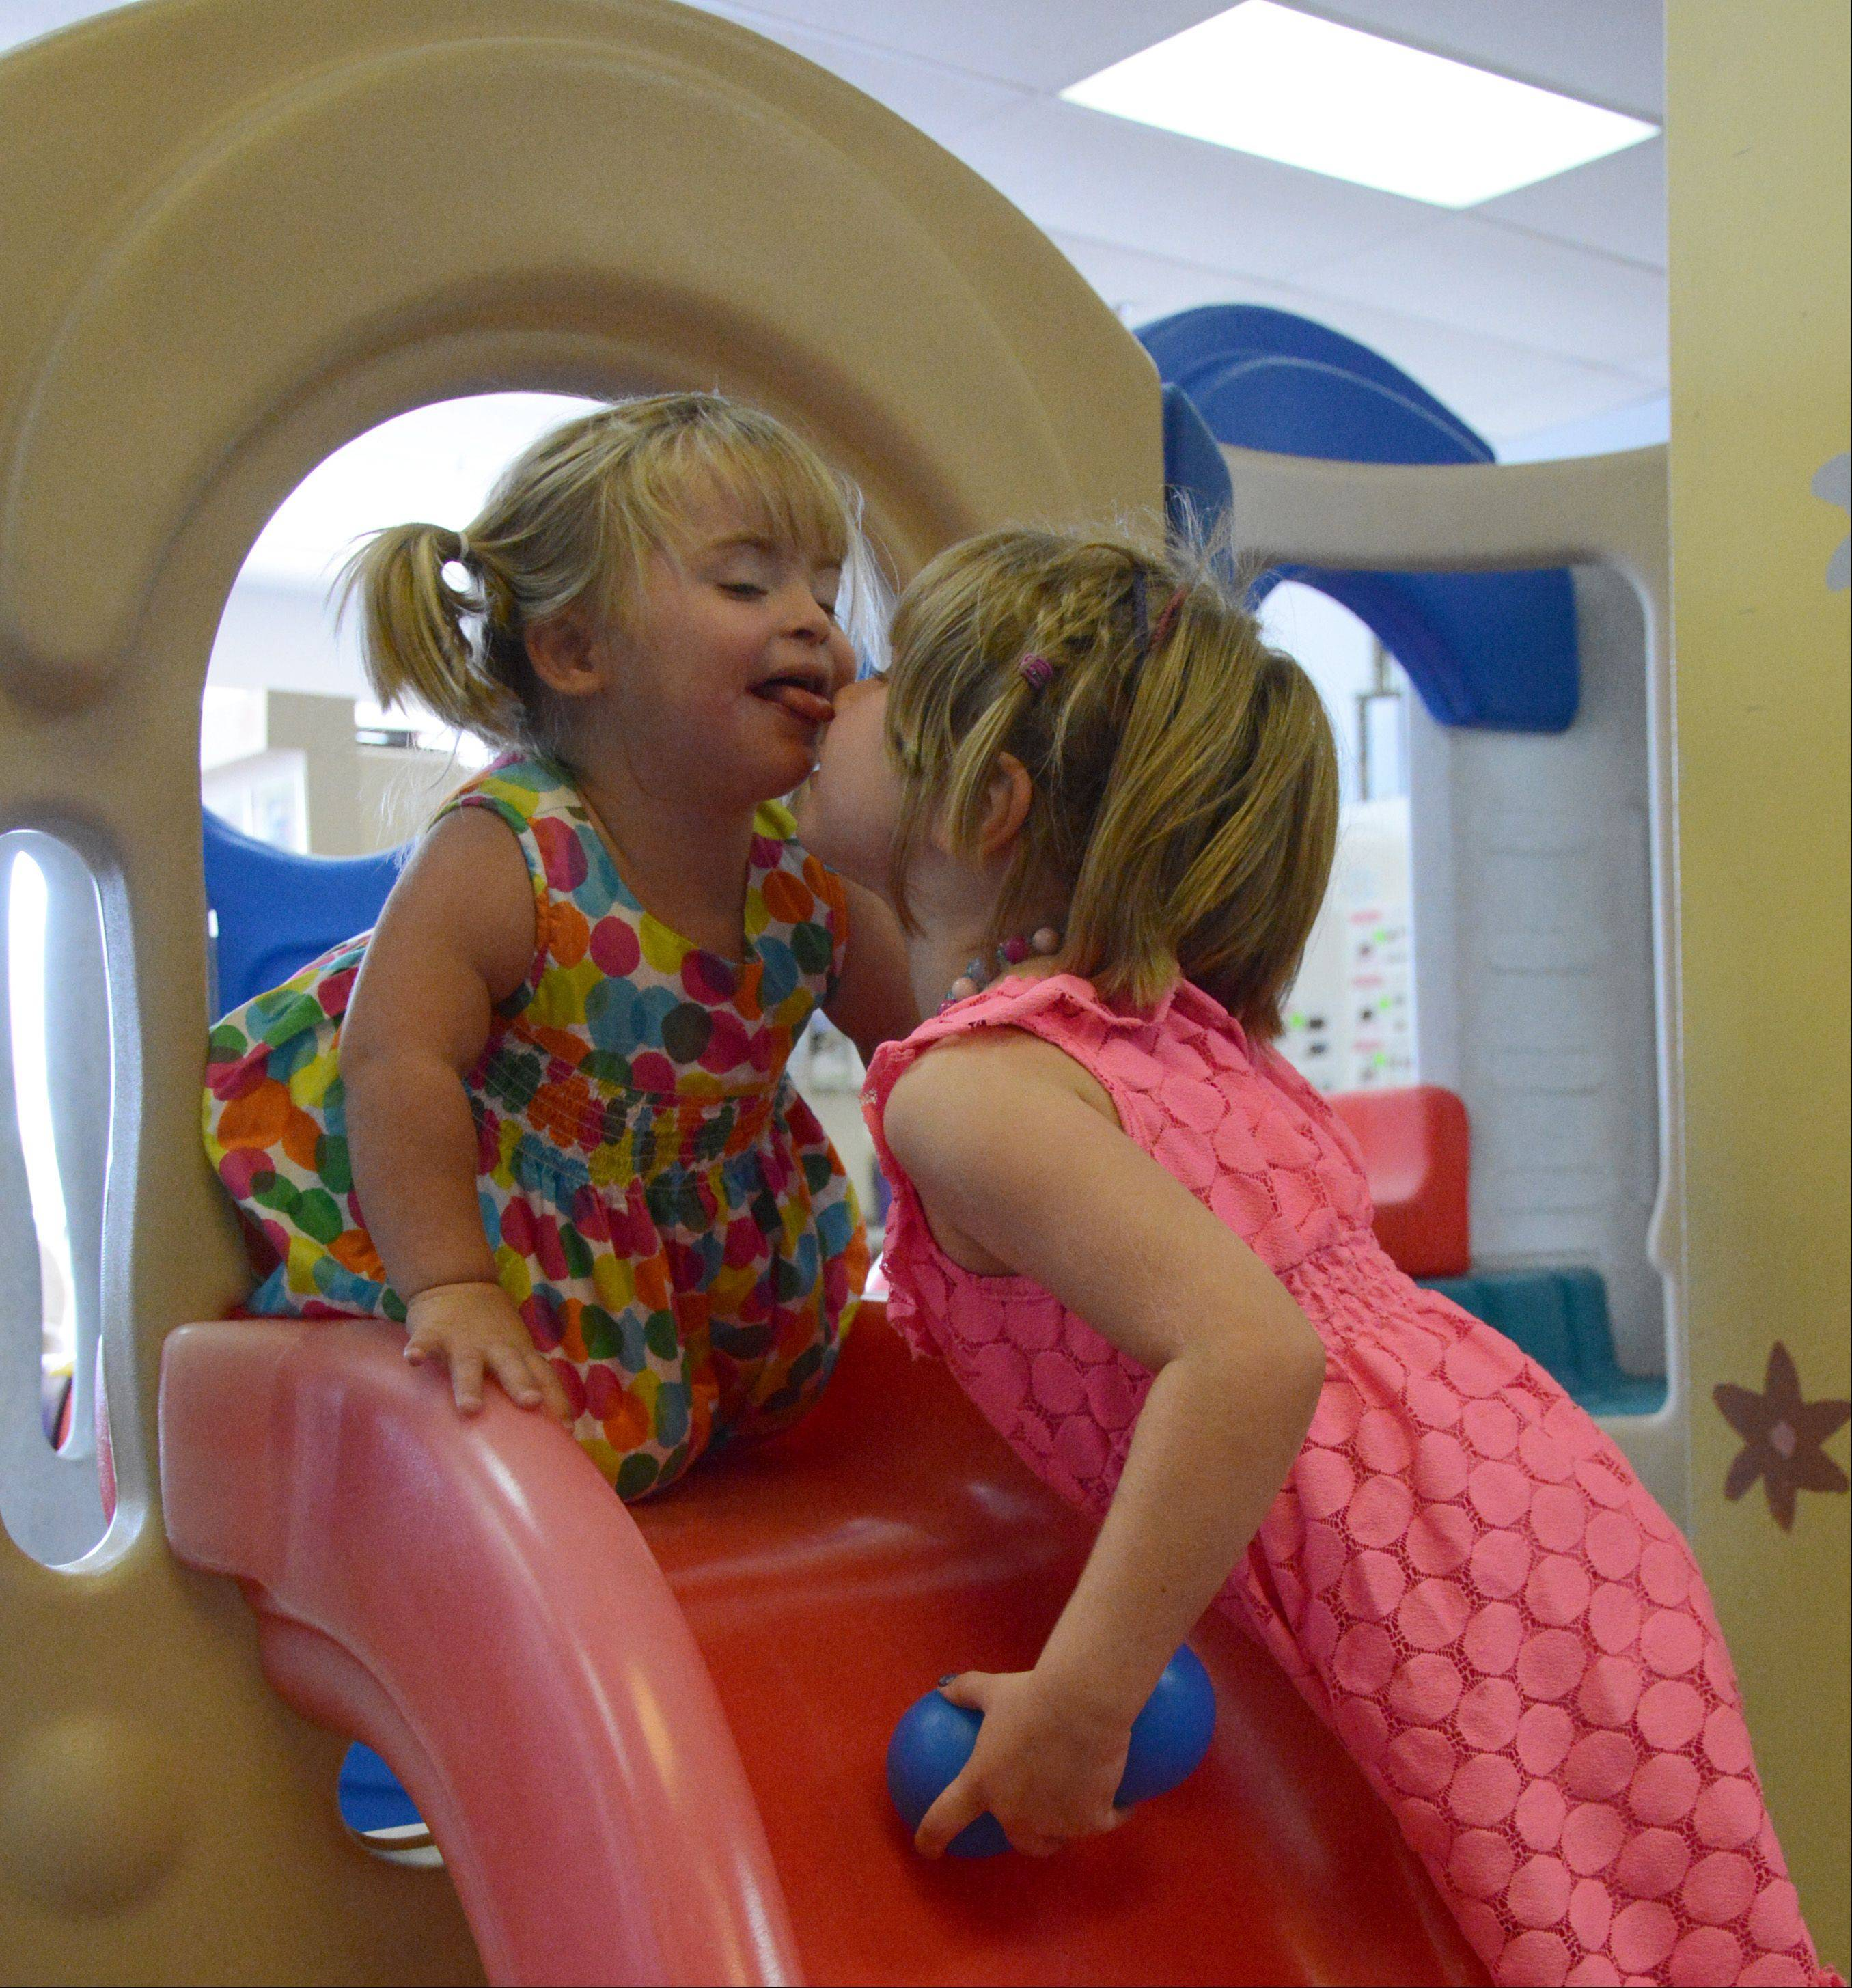 Rya Pospychala, 4, of New Hampshire, right, kisses sister Emani, 2, at GiGi's Playhouse in Hoffman Estates. GiGi's playhouse is in the process of building a new facility several miles from the current facility.